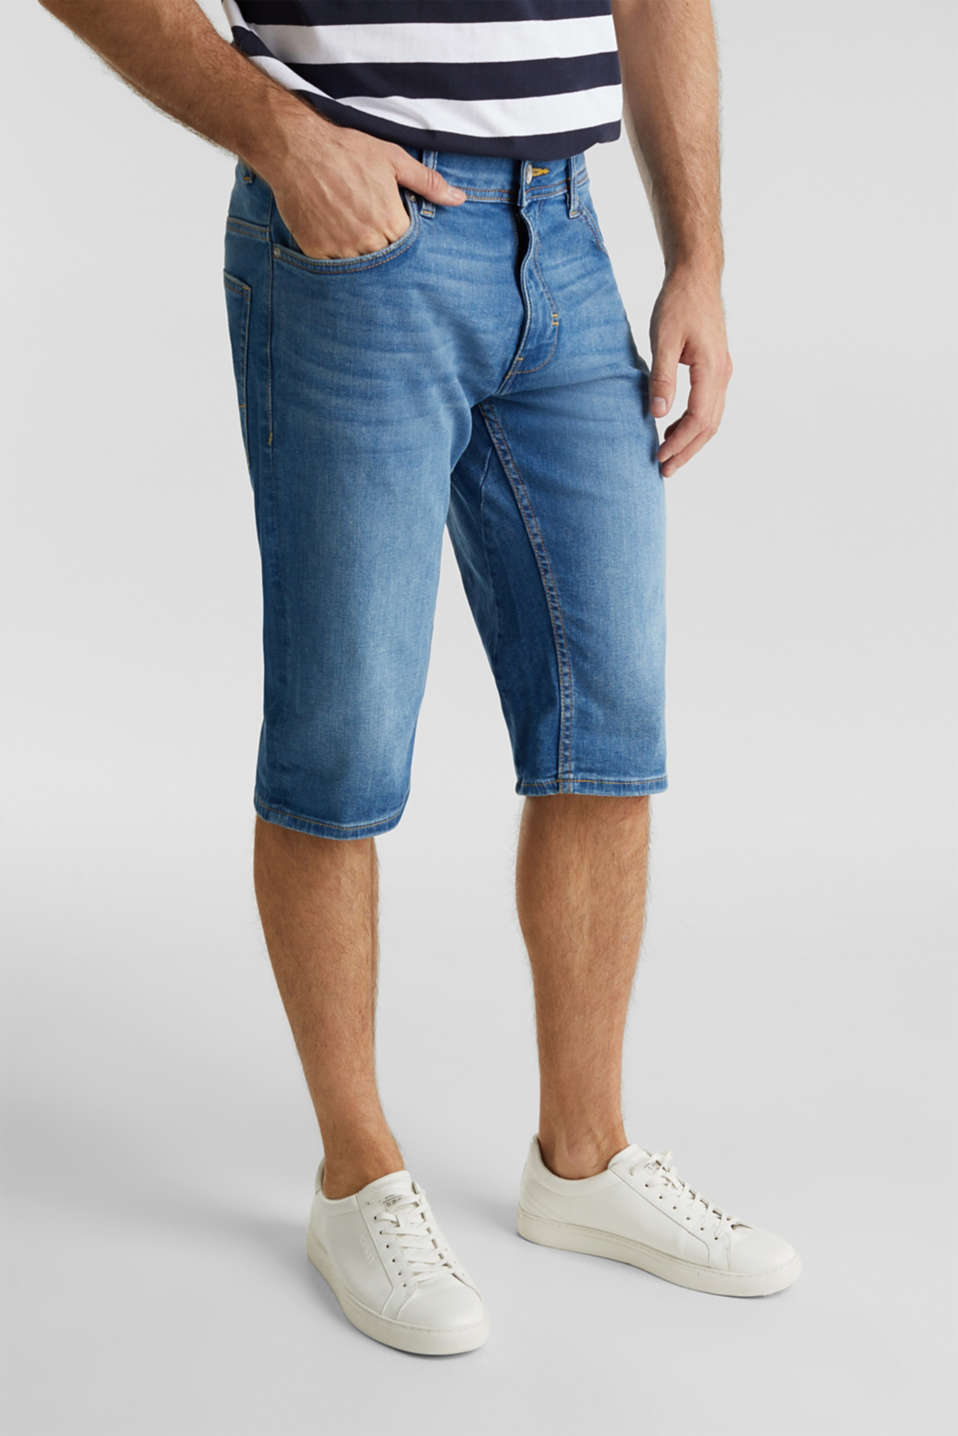 Esprit - Bermuda-Jeans mit Washed Out-Effekt